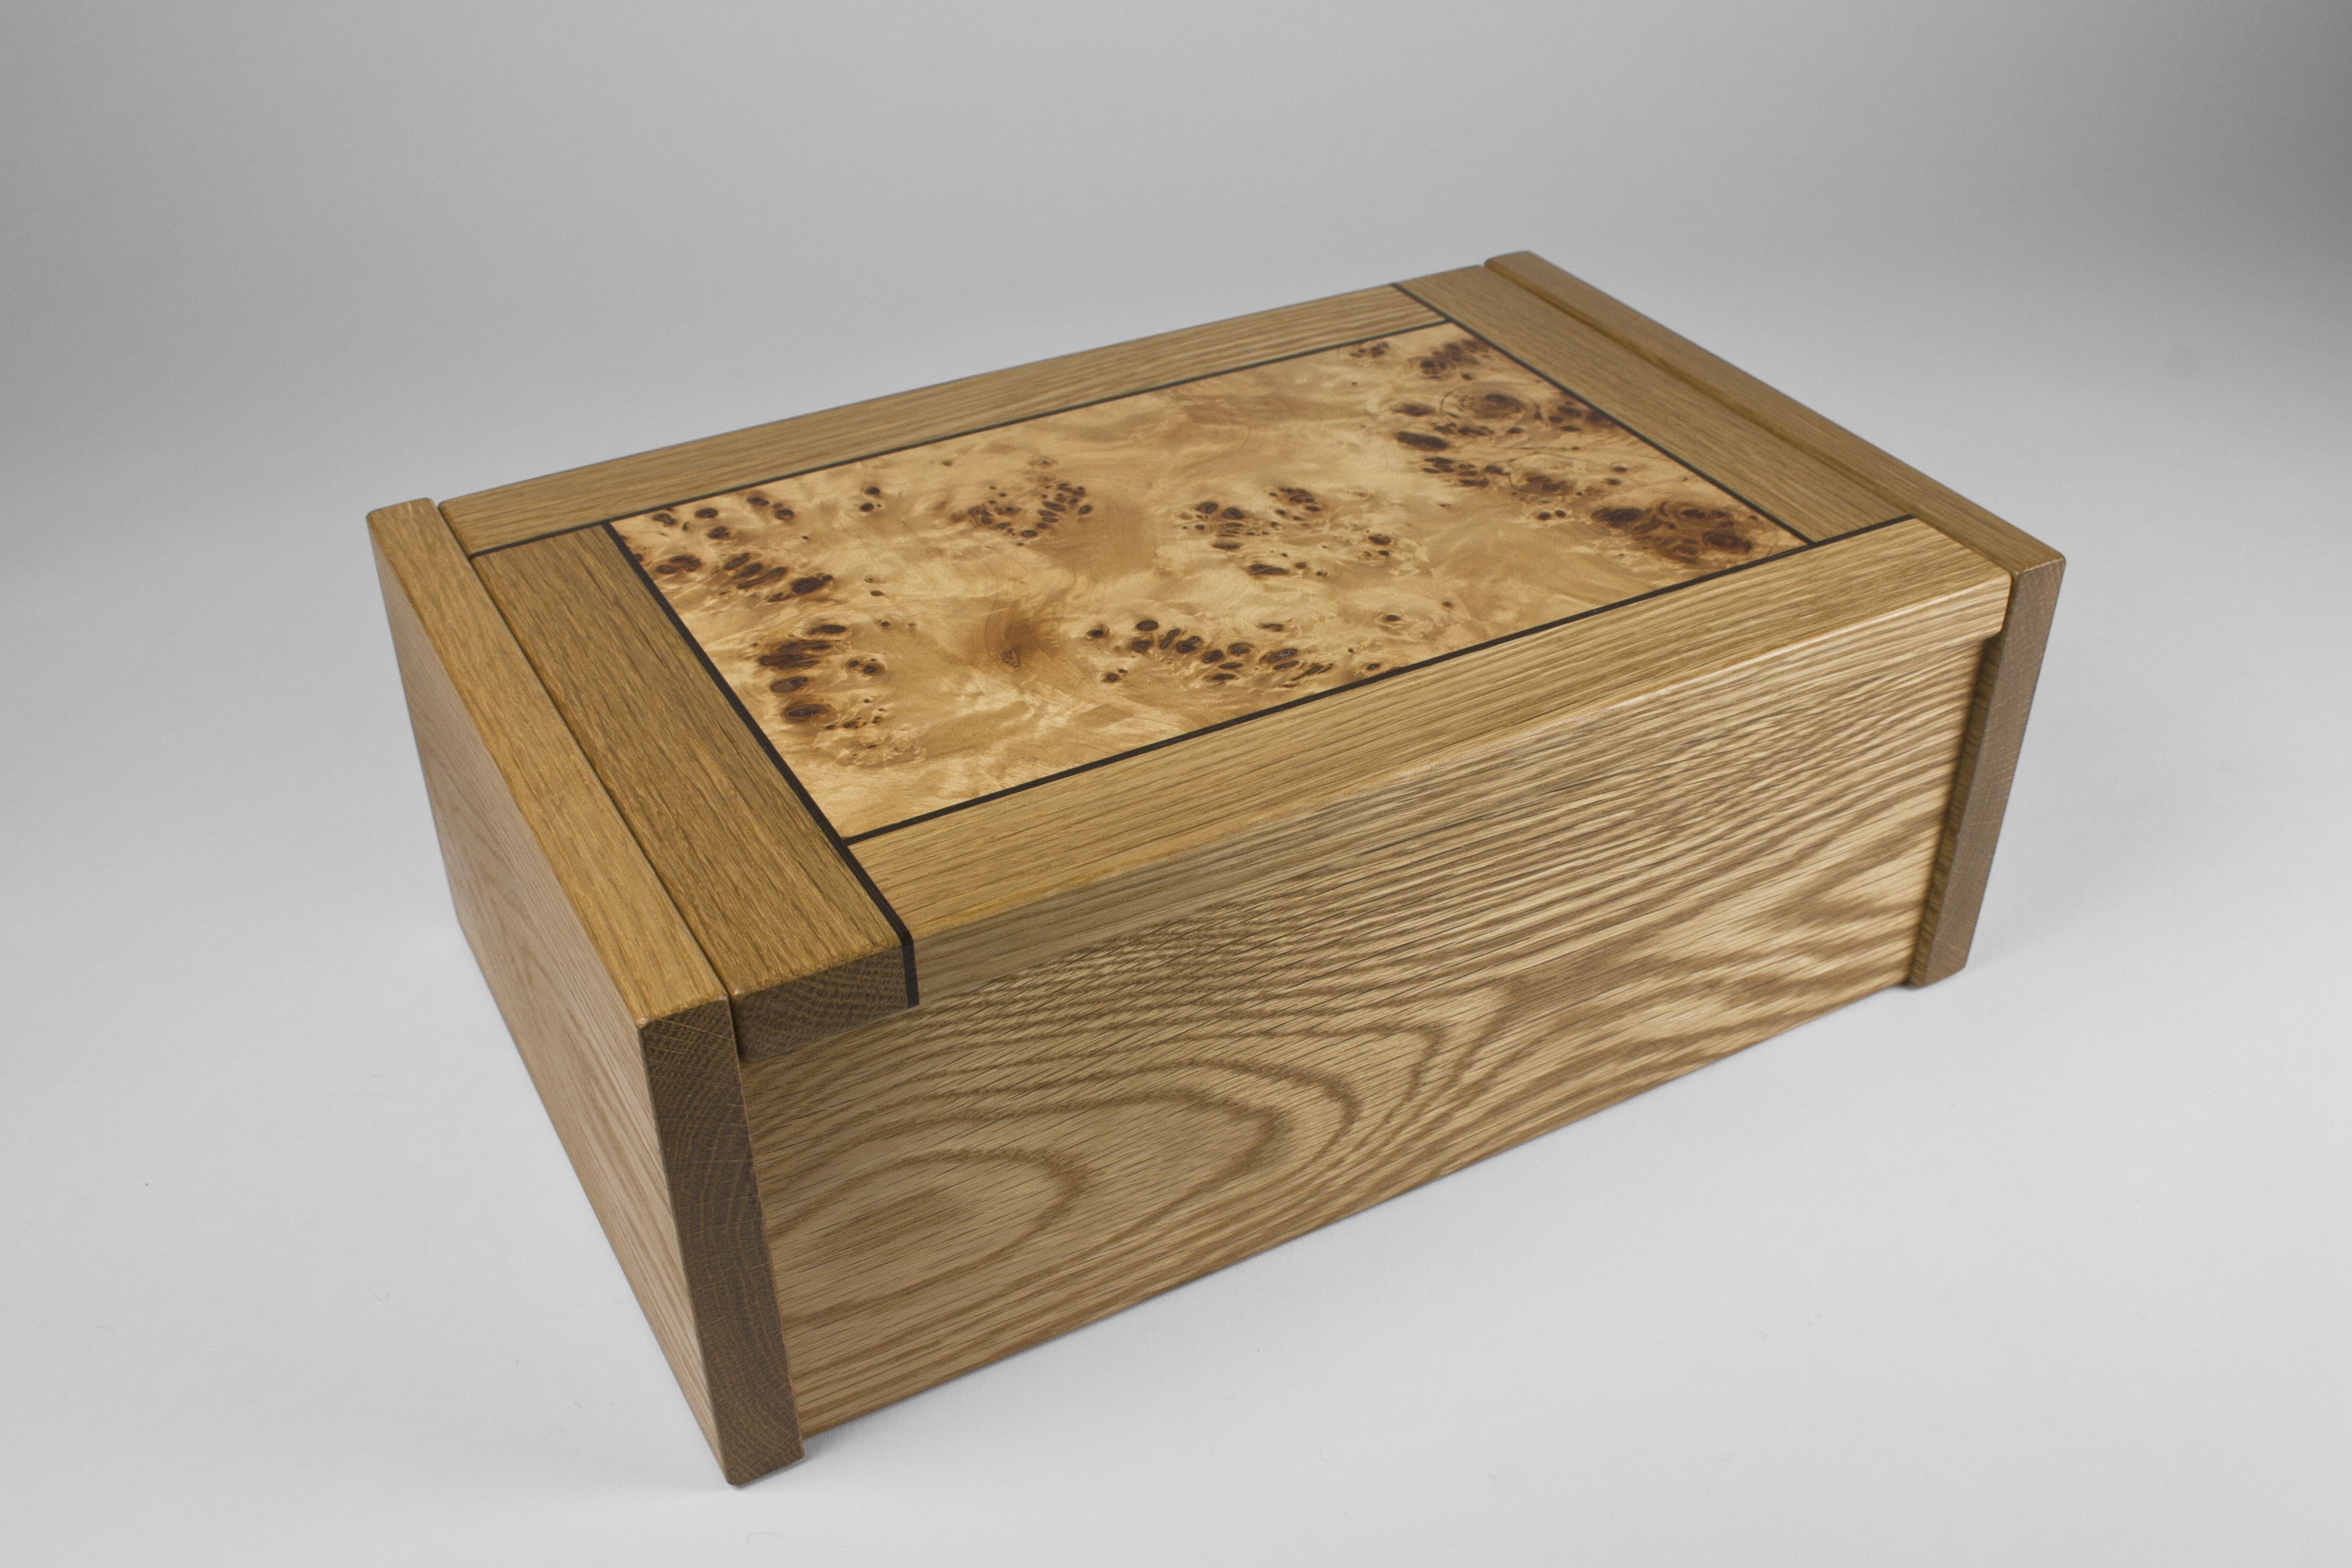 The lid is made from poplar burr